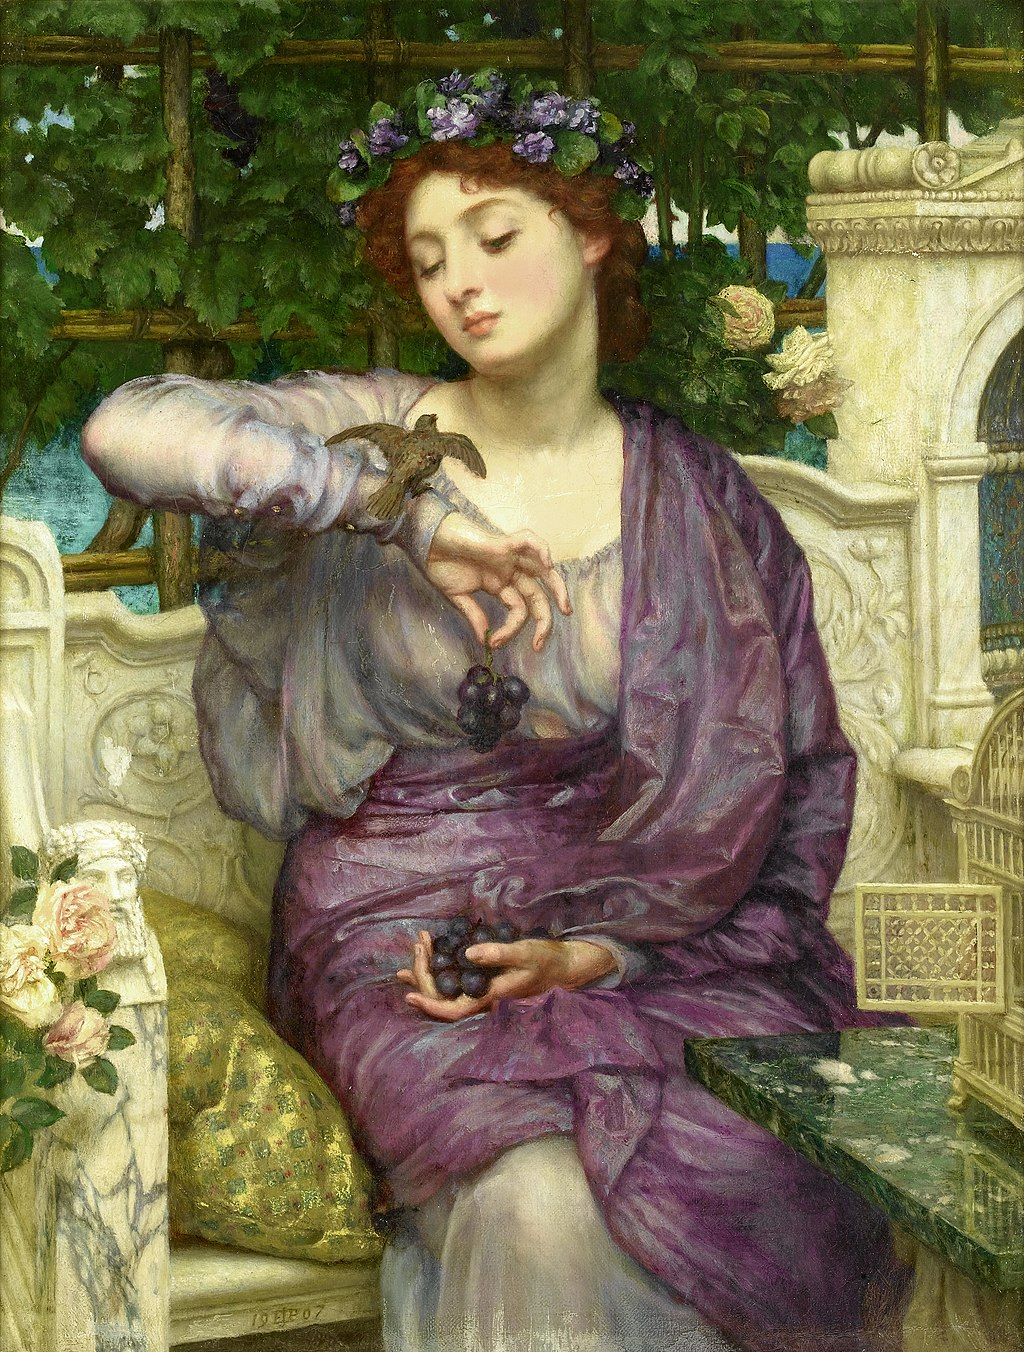 Sir Edward John Poynter lesbia and her sparrow